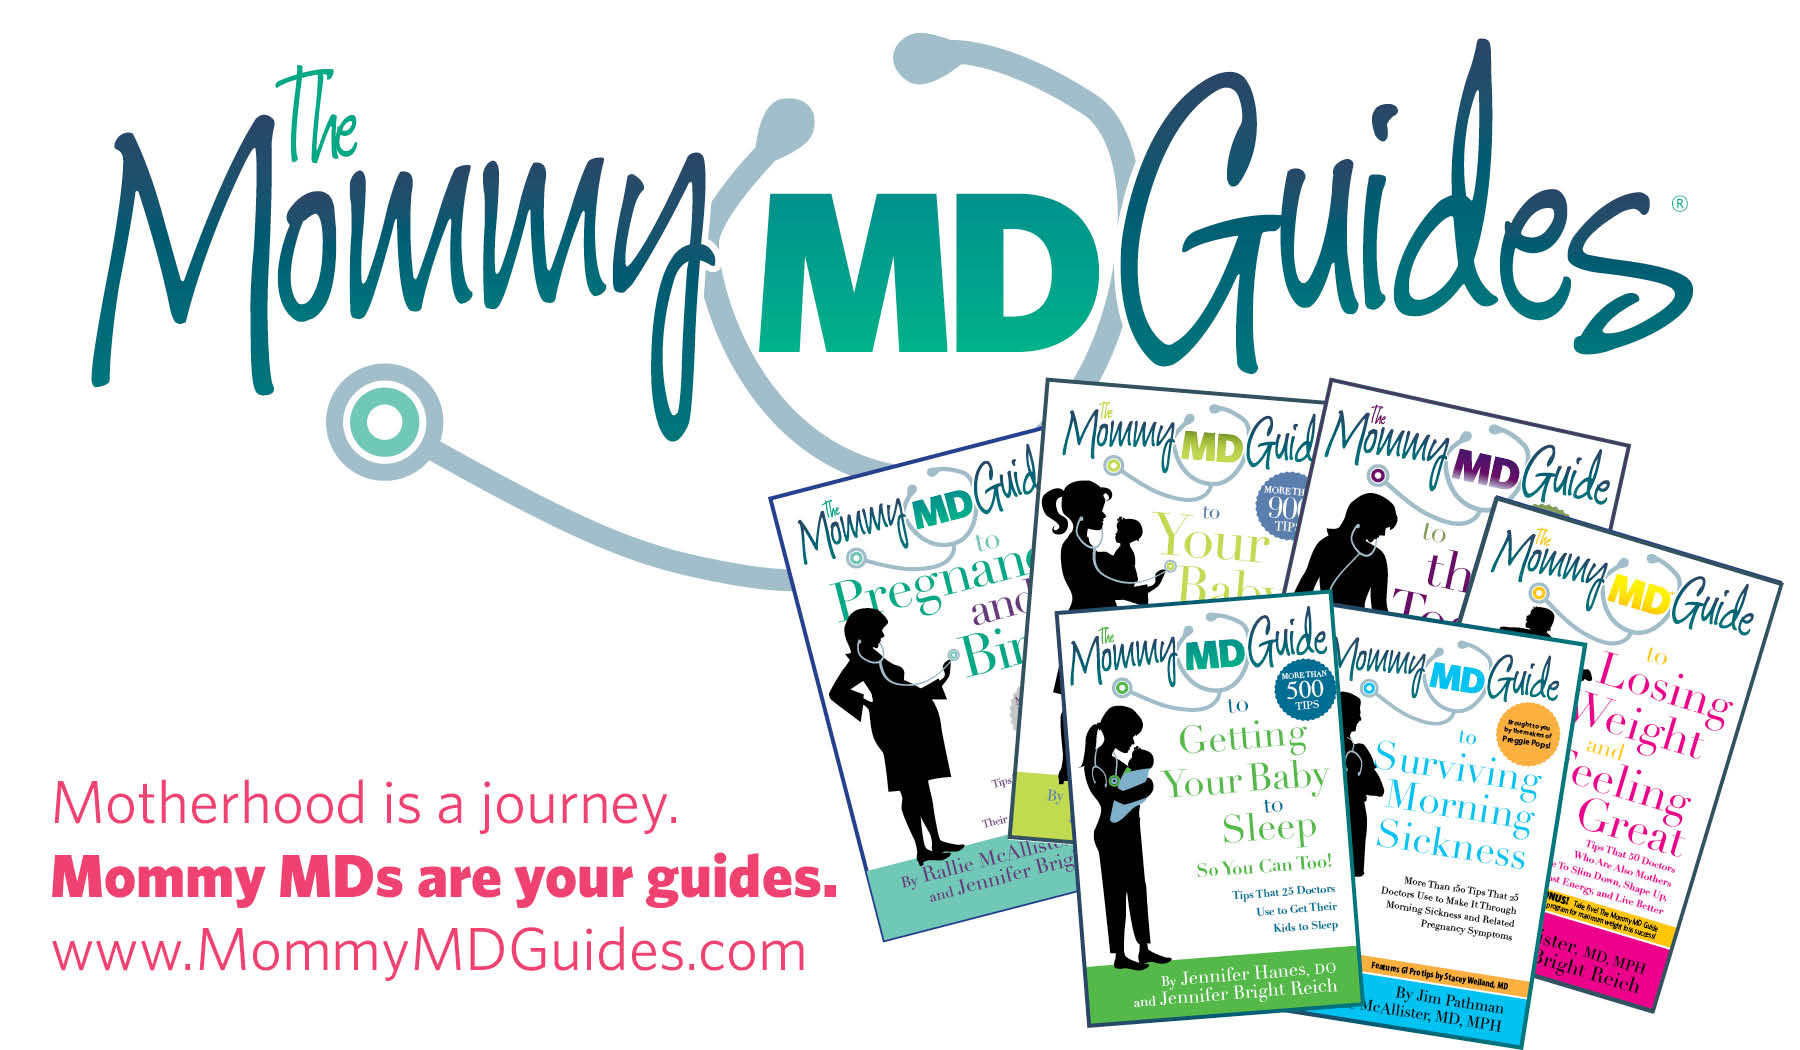 logo-mommy-md-guides-main-6-no-border